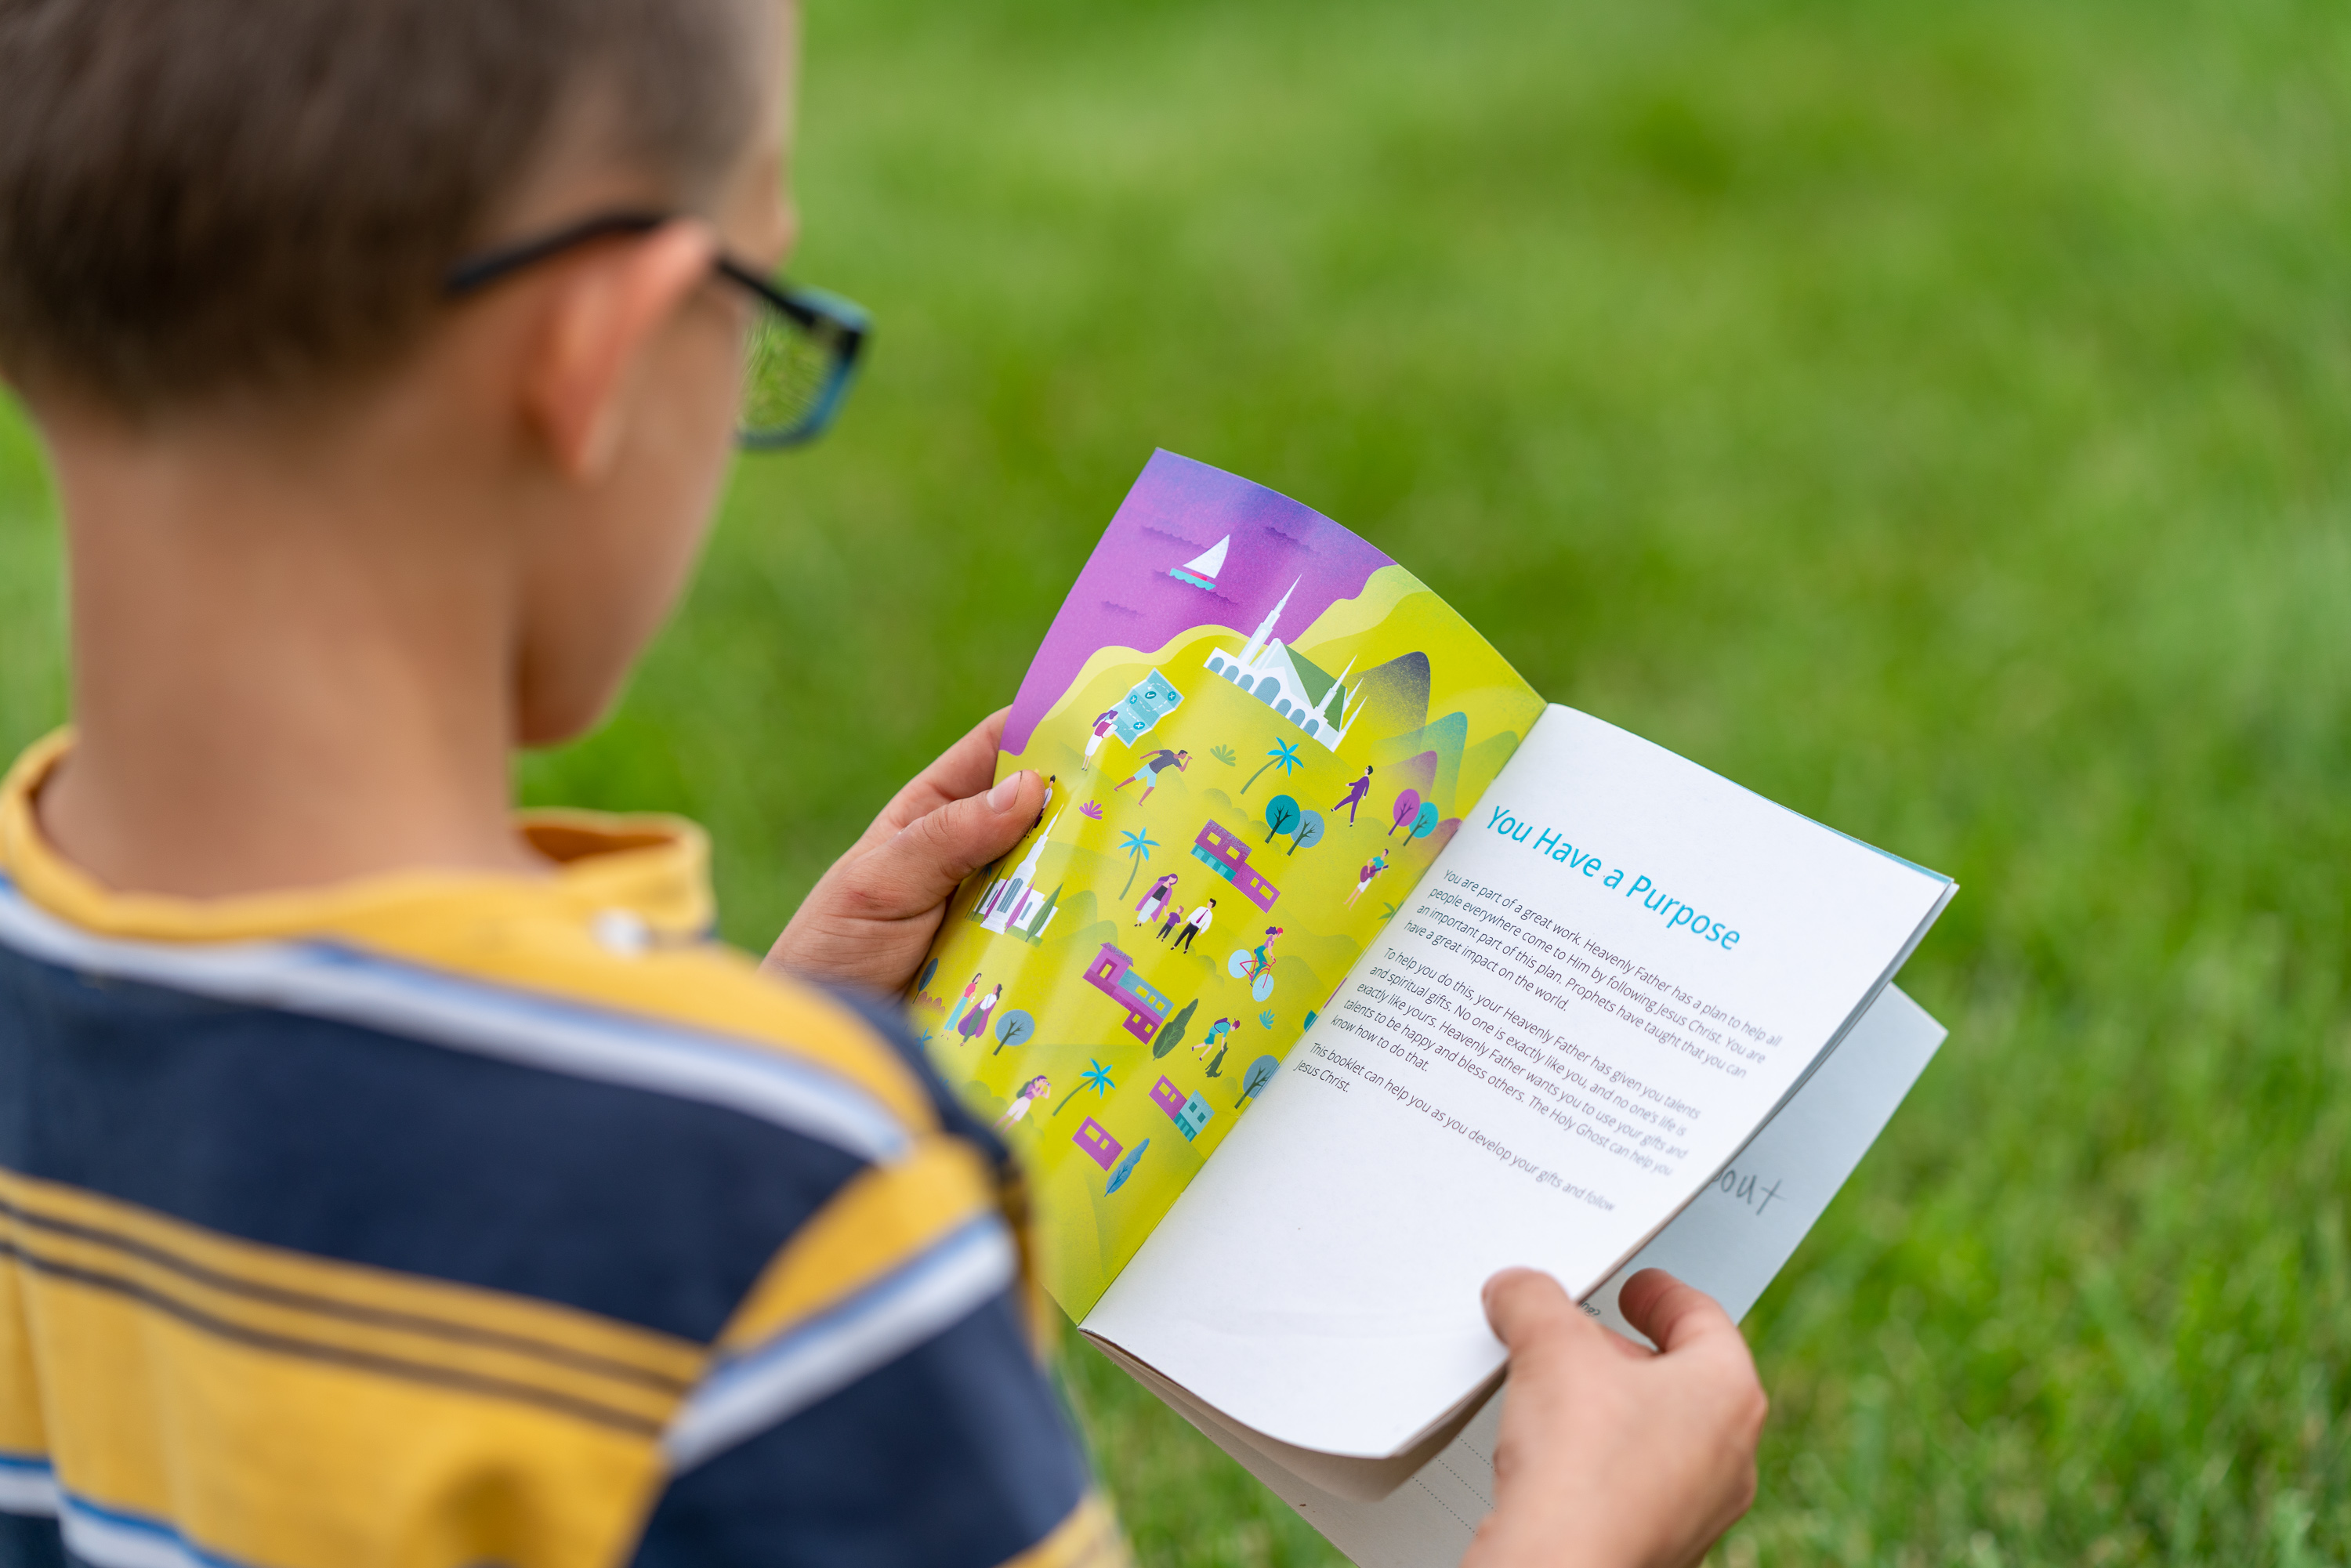 A young boy looks at a children's personal development guidebook for the new Children and Youth program.